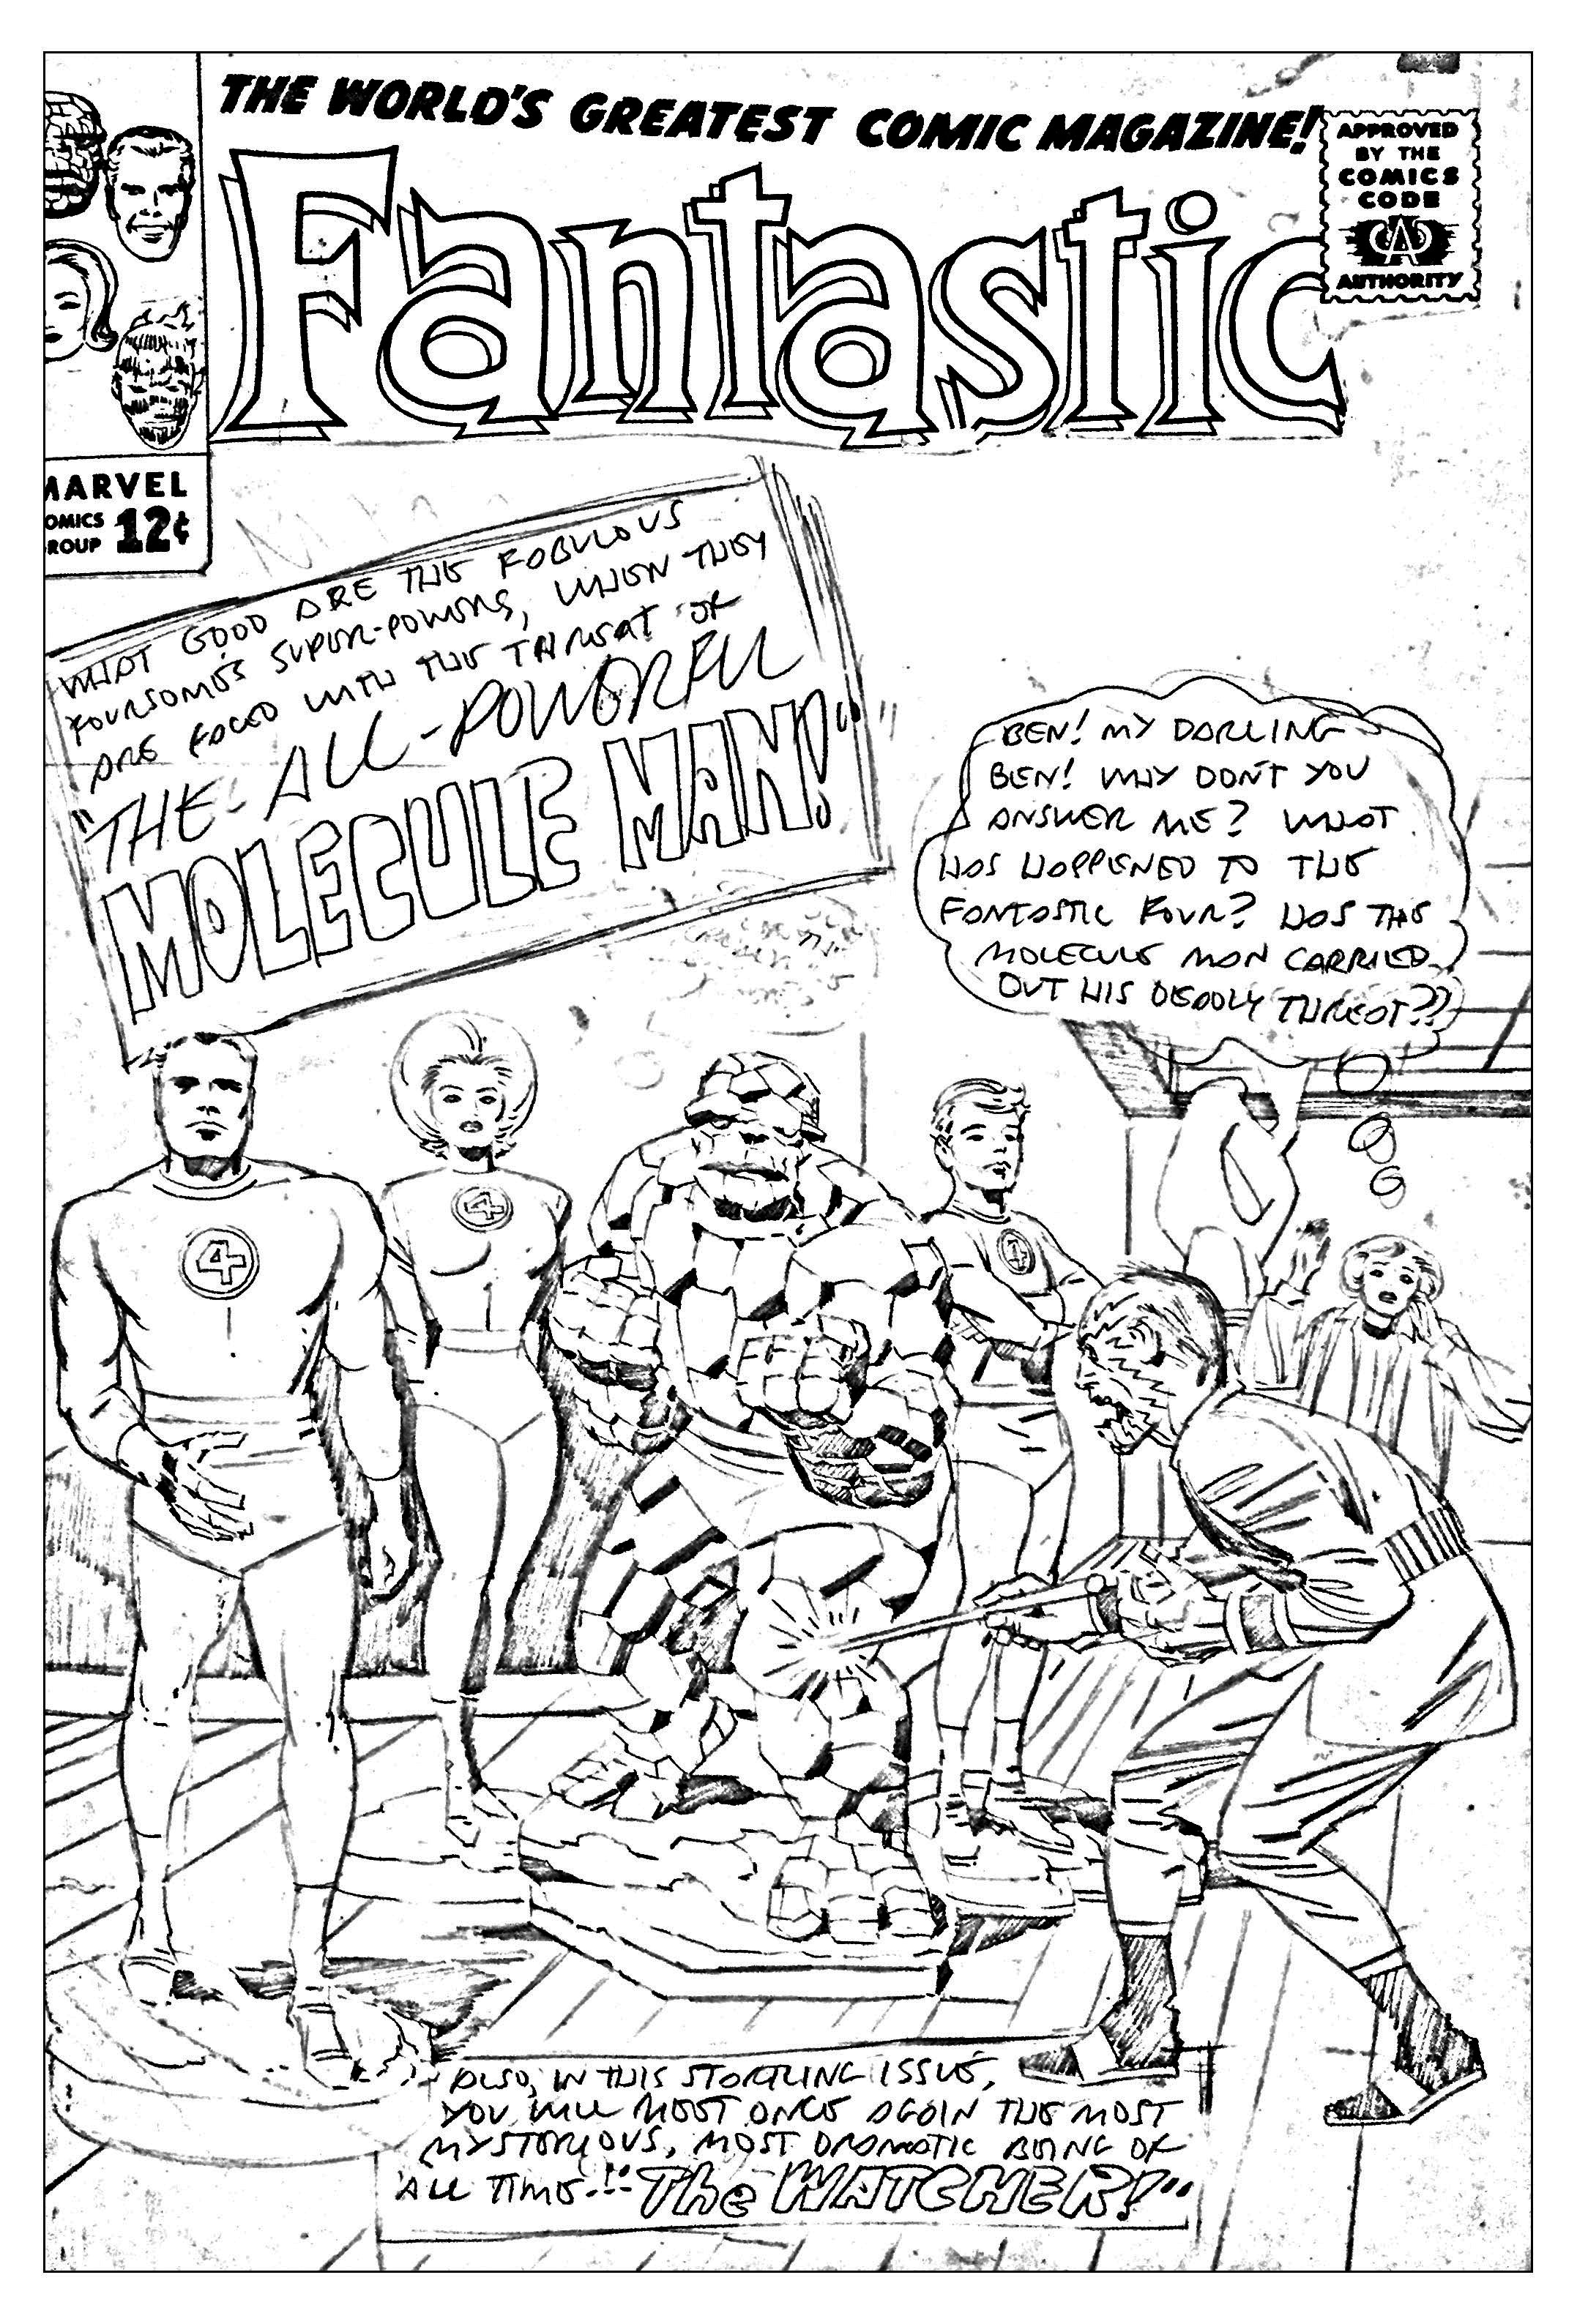 Comics fantastic for unreleased cover 1963